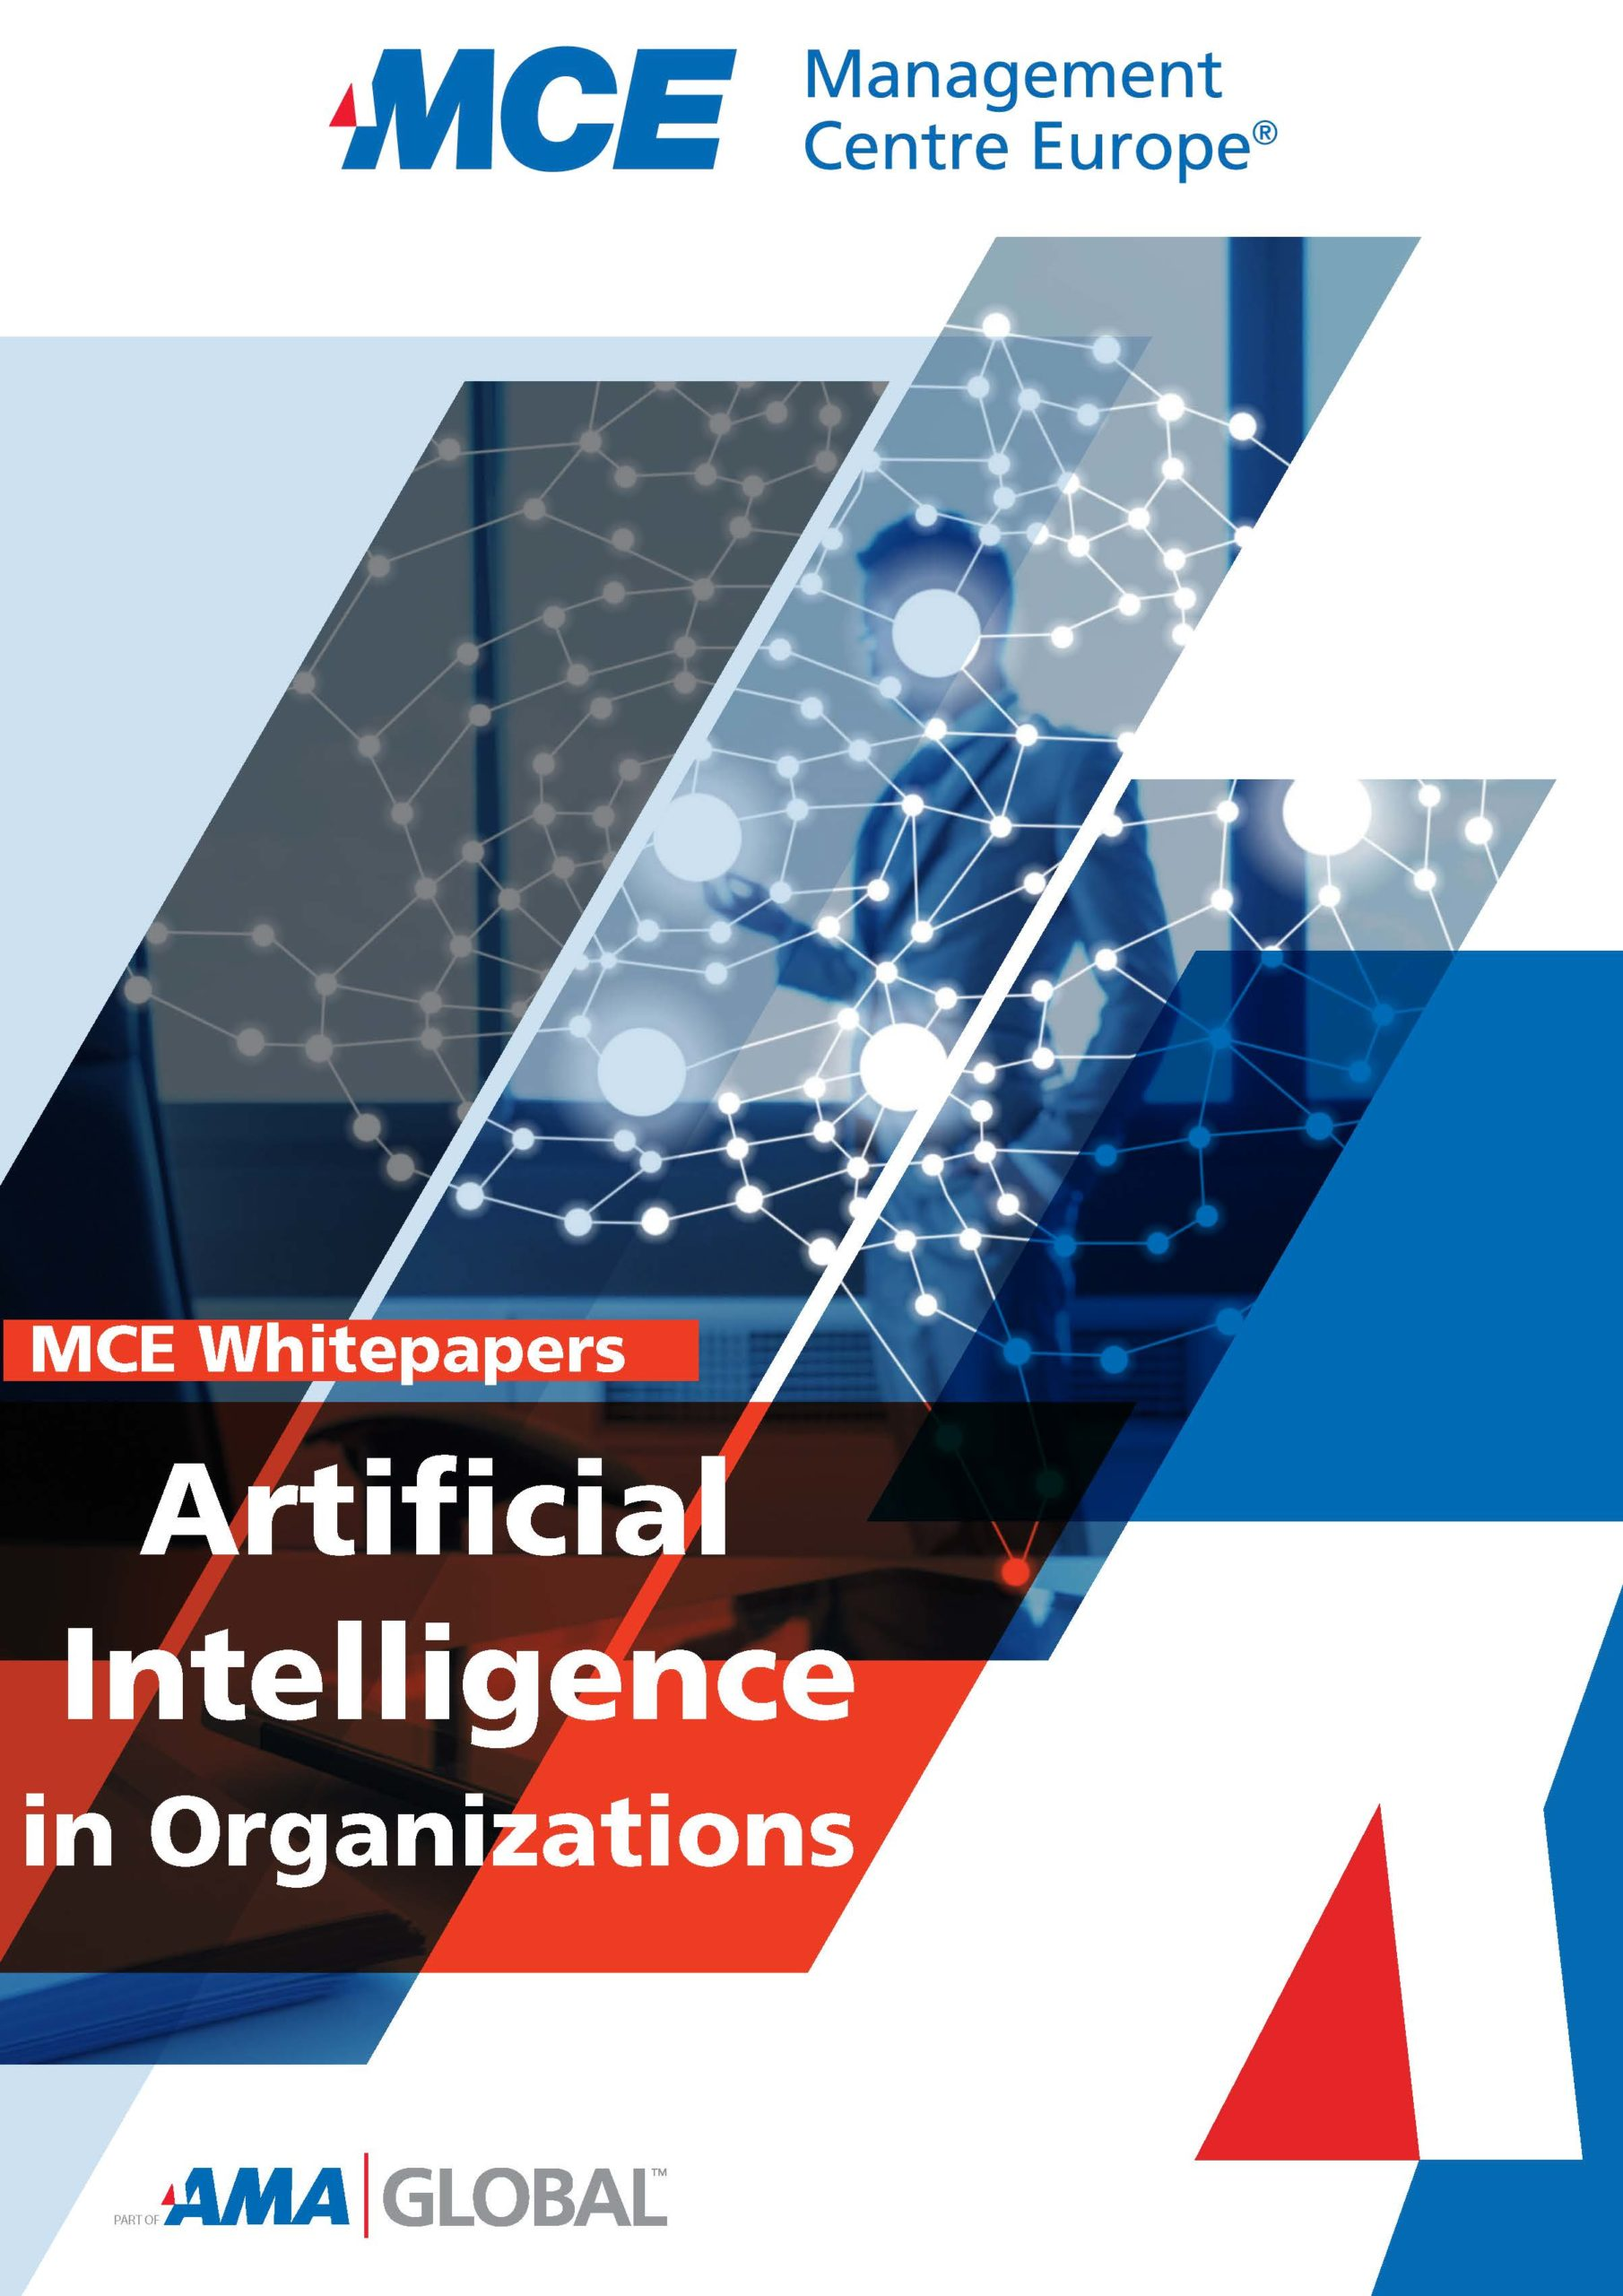 MCE Whitepaper: Artificial Intelligence in Organizations